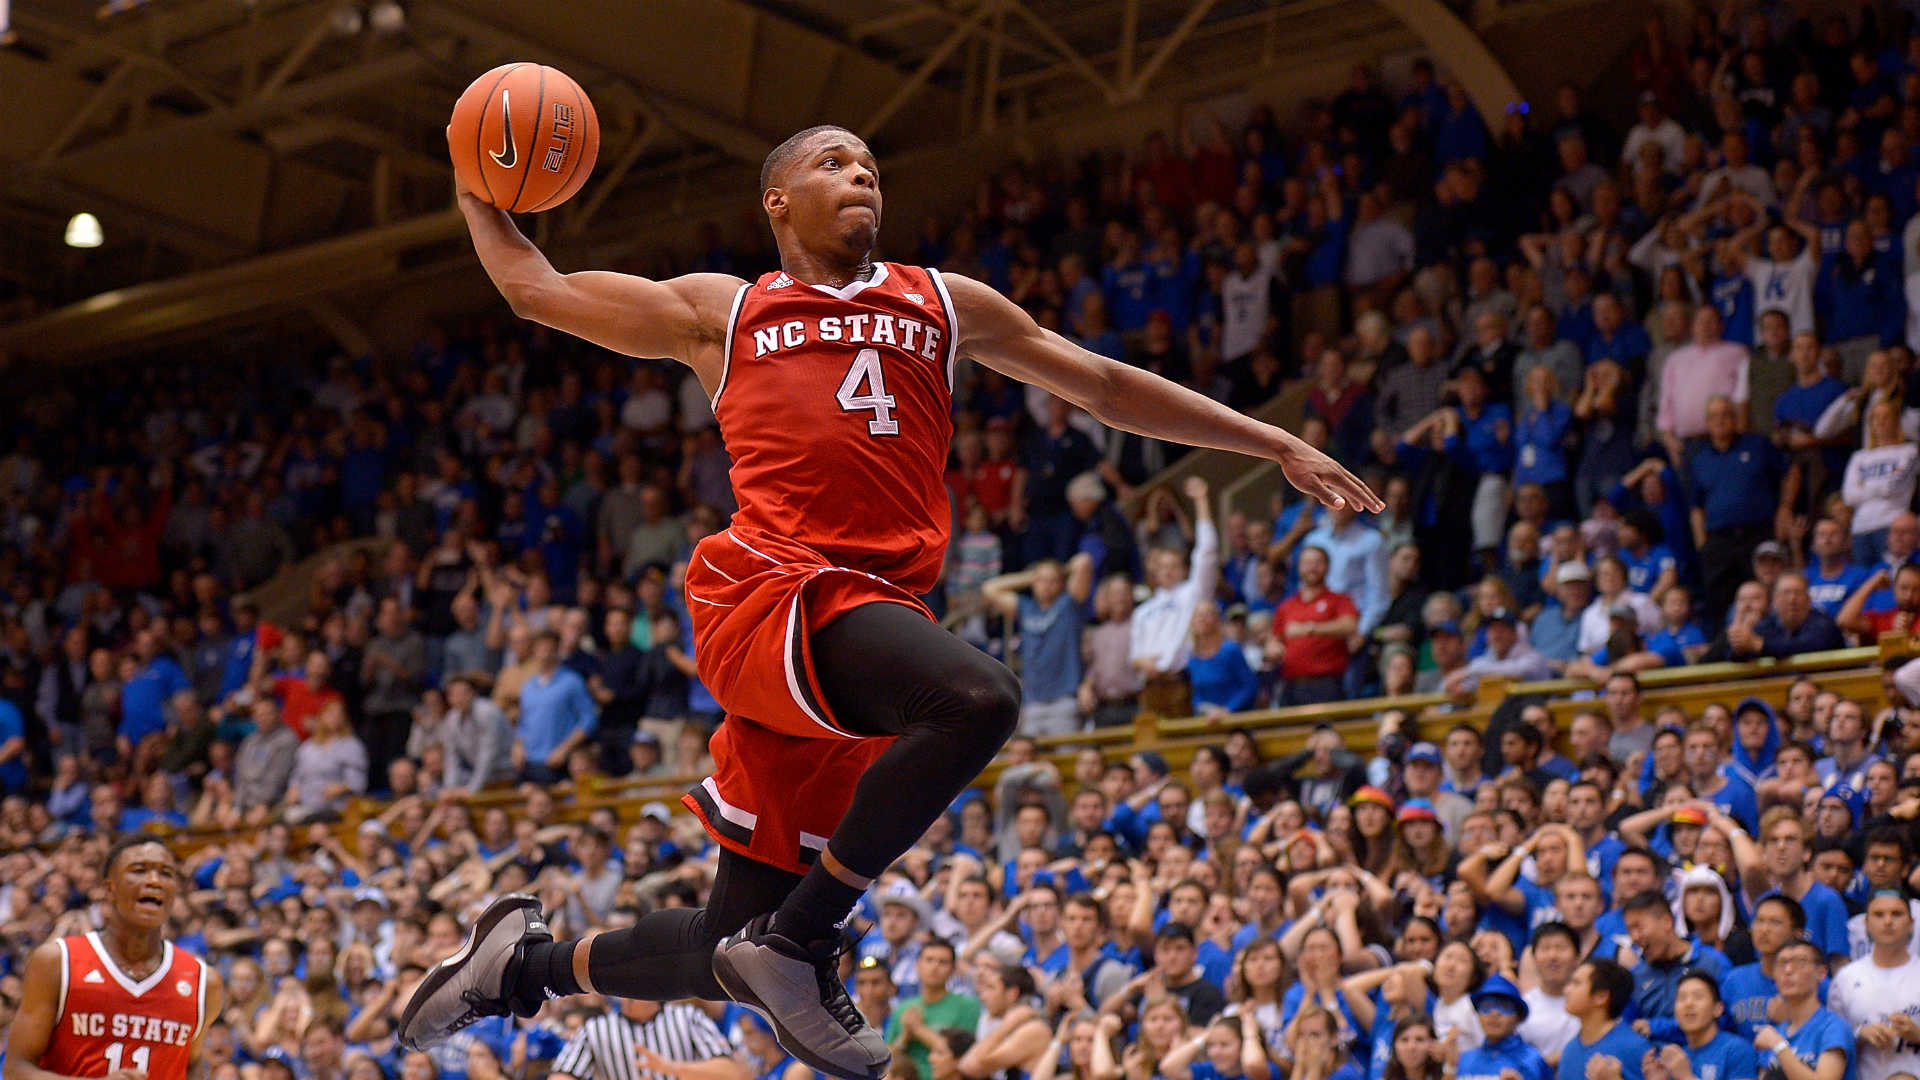 NC State's recruitment of Dennis Smith Jr. at heart of major NCAA allegations